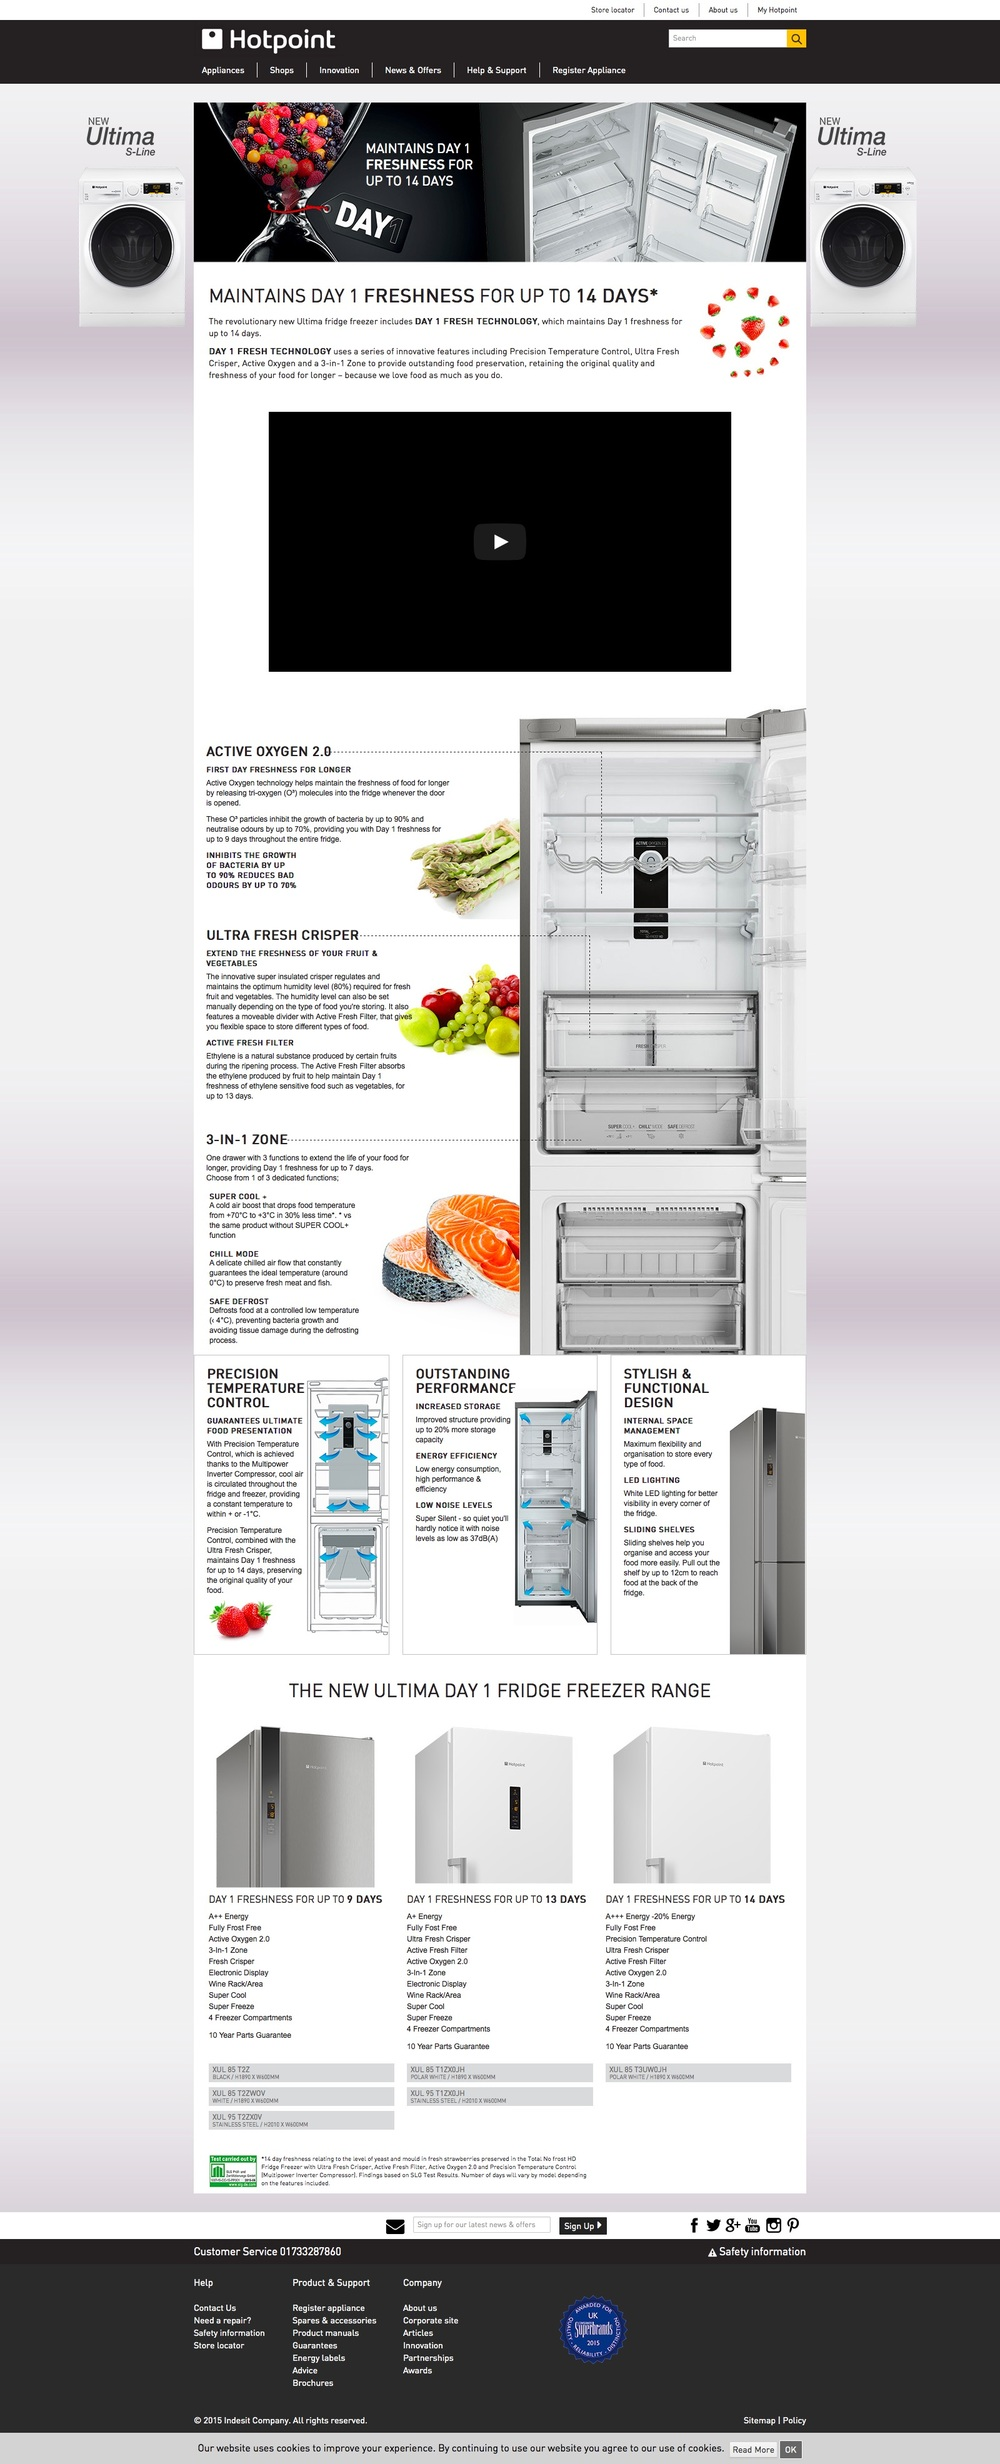 Day-1-Fridge-Freezers-20150821.jpg